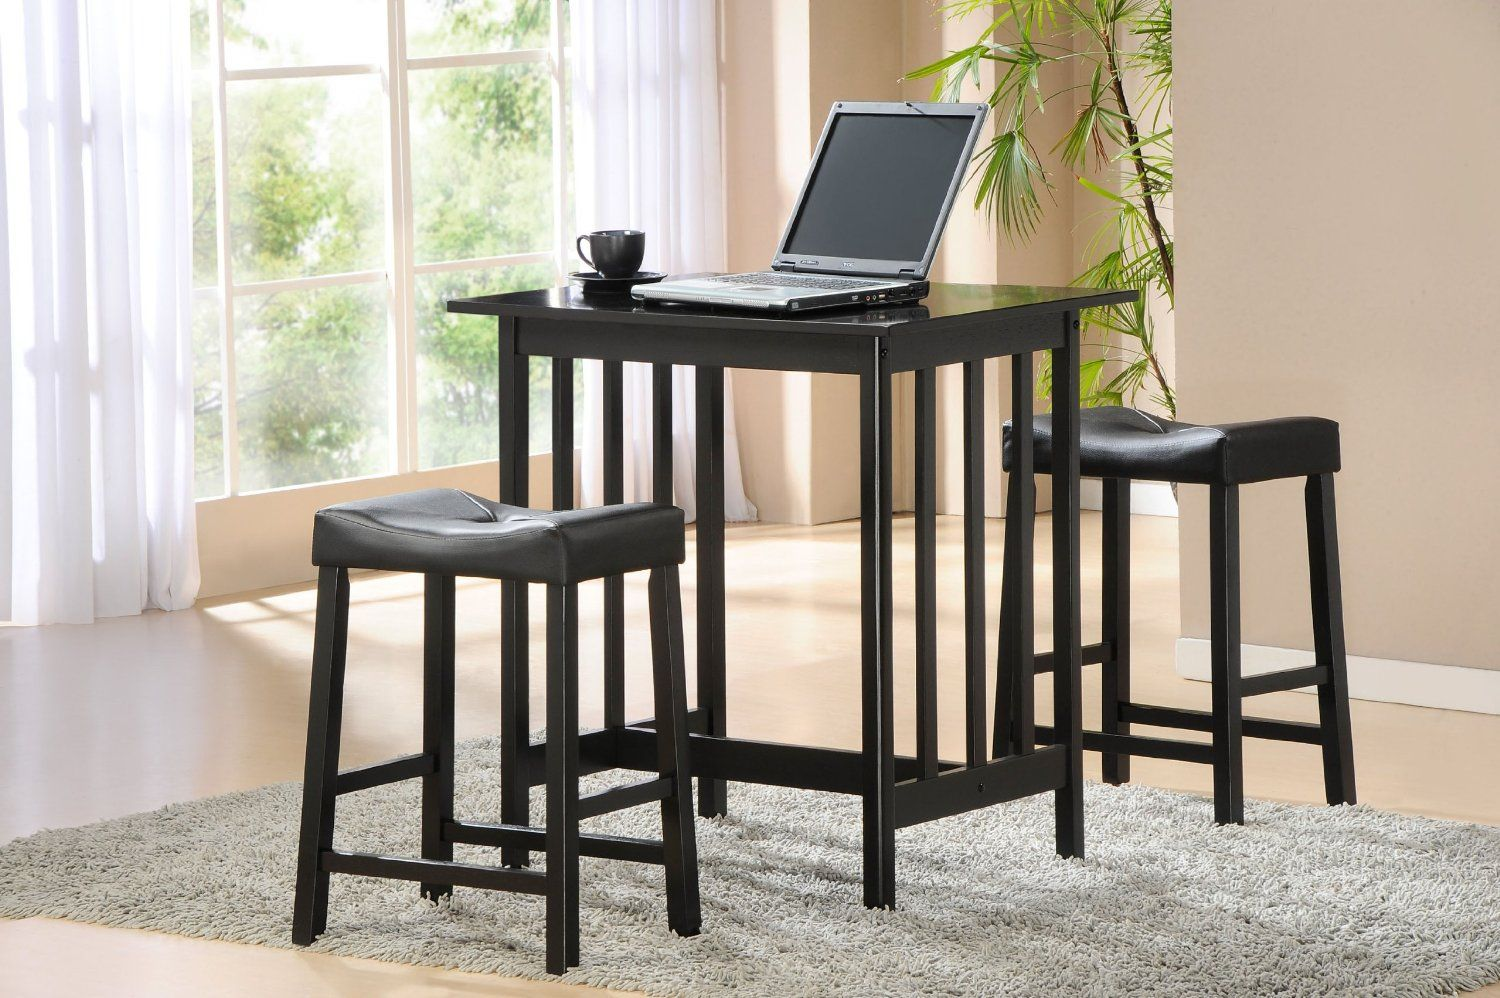 Amazon.com: Homelegance 5310BLK 3-Piece Counter Table and Stools in Black: Home & Kitchen $119.45